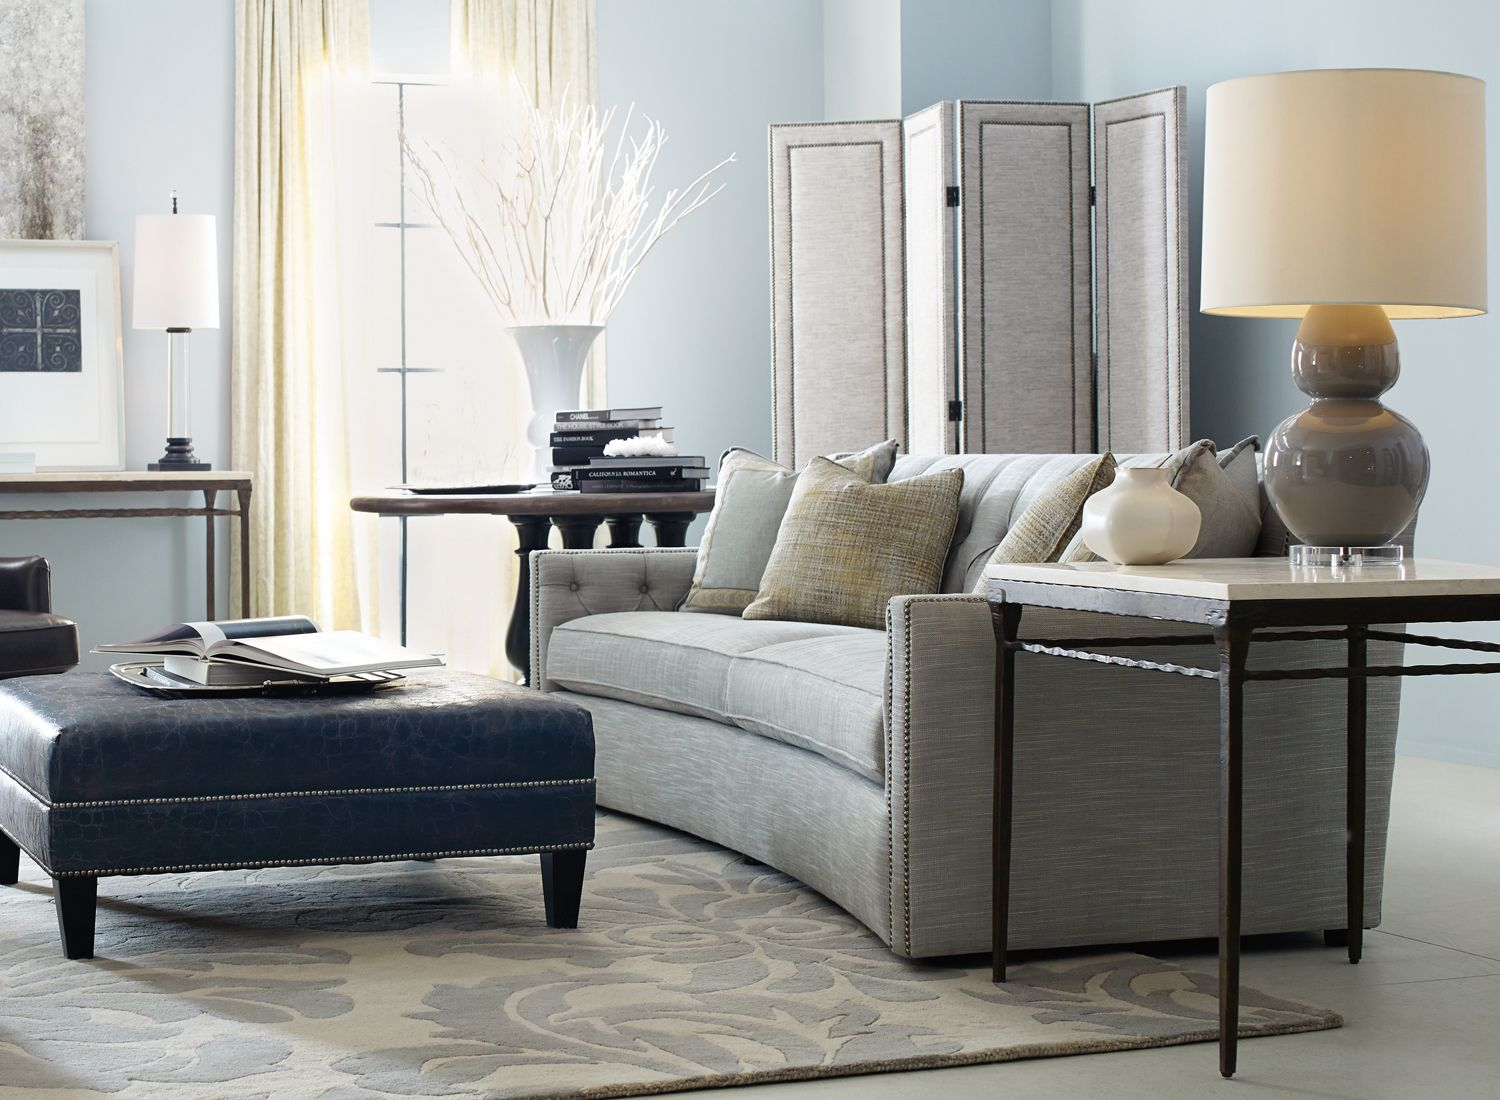 Elegant Candace Sofa By Bernhardt. Available From Toms Price.